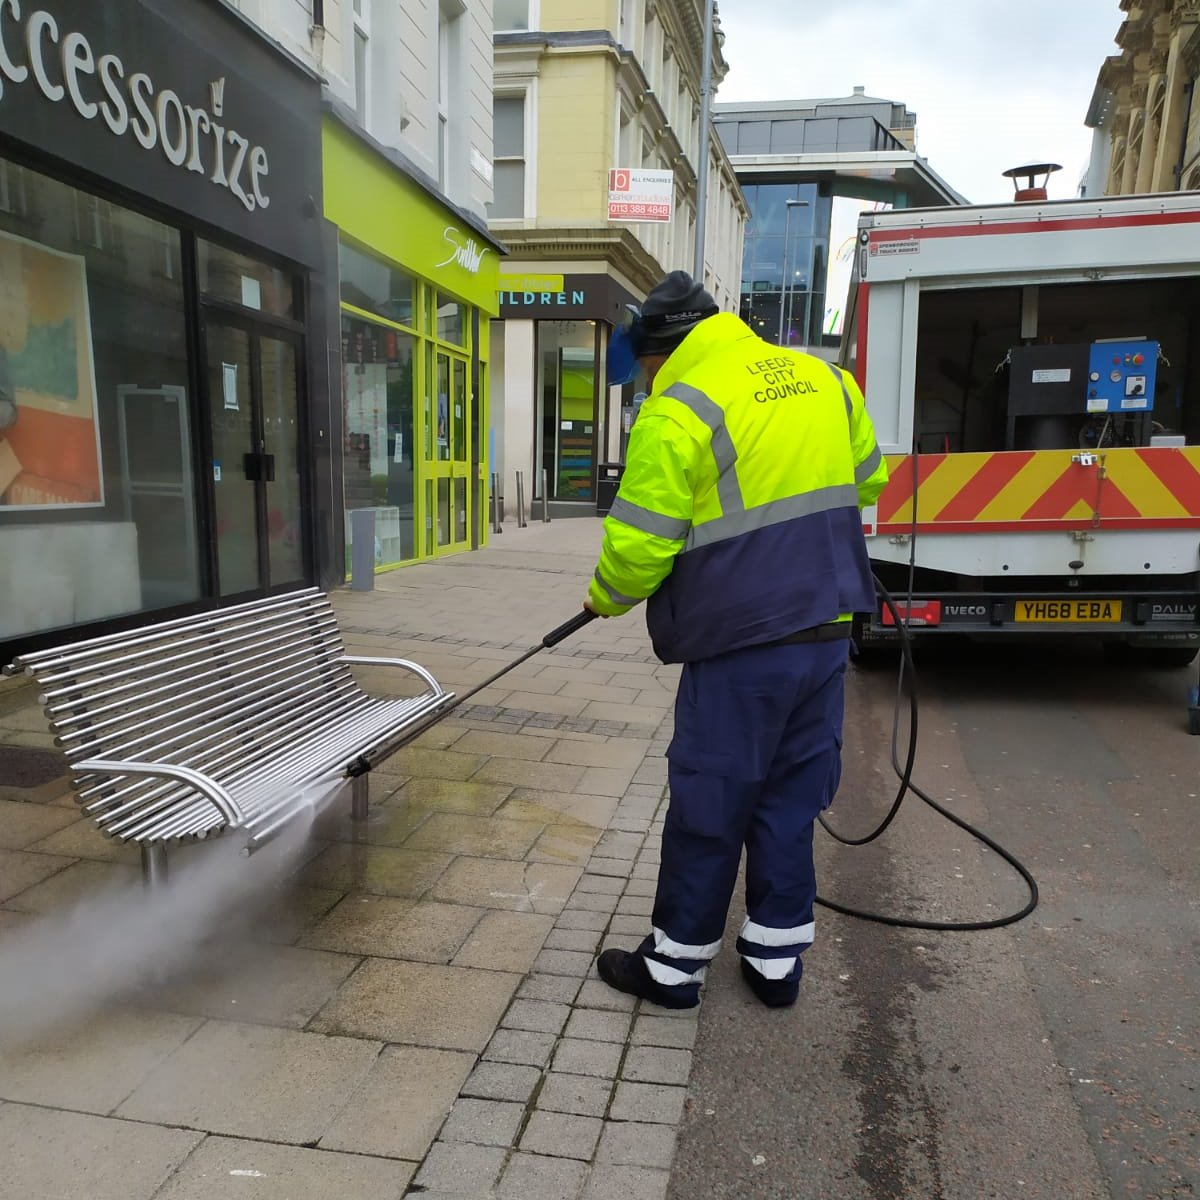 Leeds City Councils cleansing services team continue to carry out enhanced cleaning in the city centre, including disinfecting street furniture. Thank you @Clean_Leeds